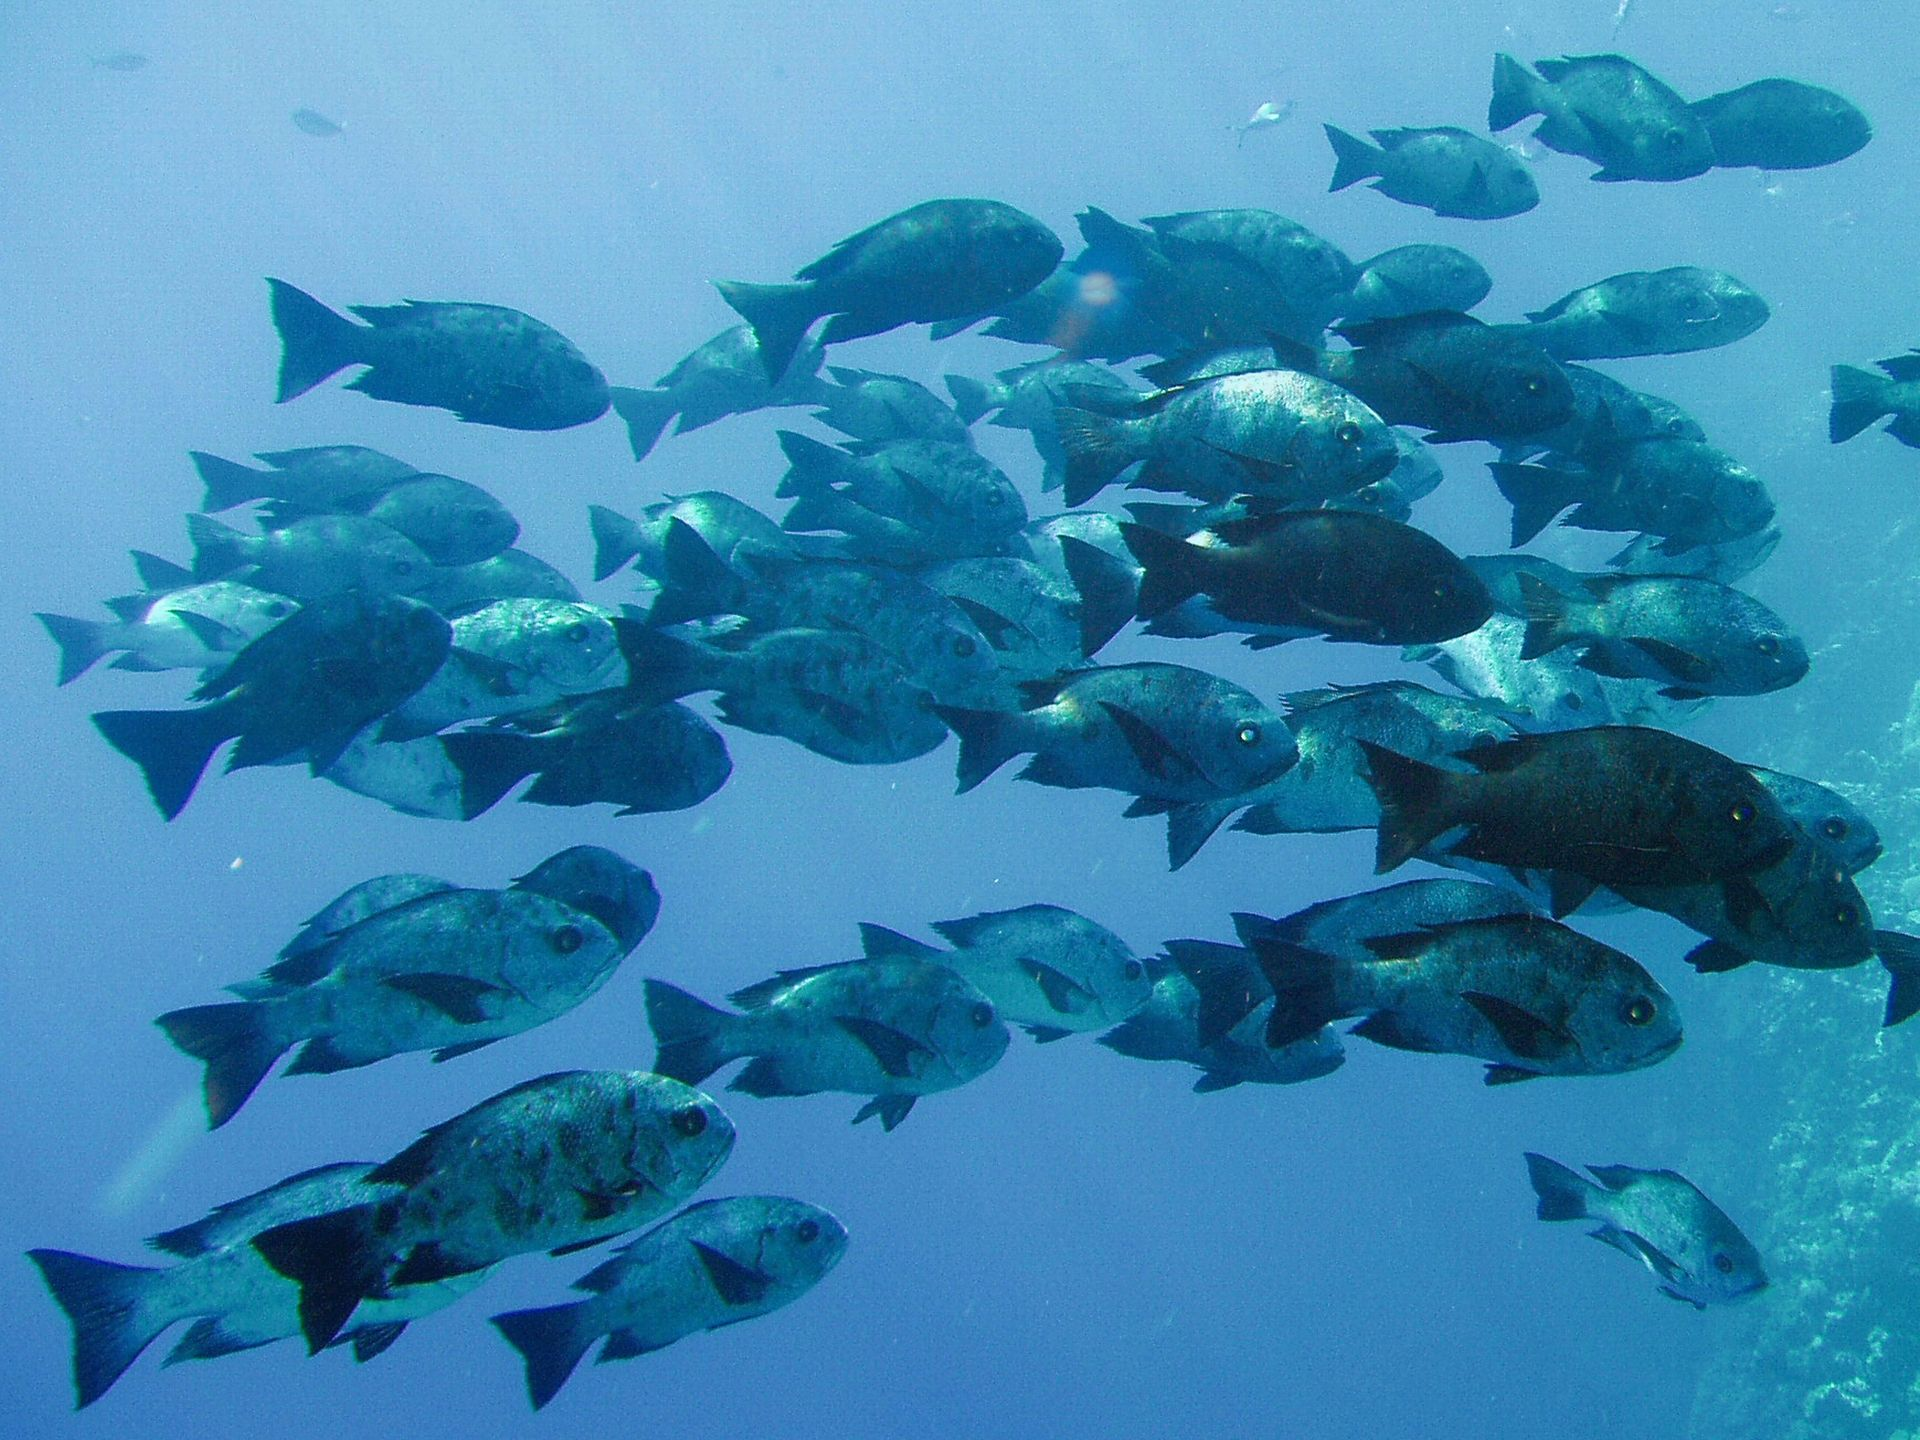 Animals Blue sea perch school fish picture nr 41893 1920x1440